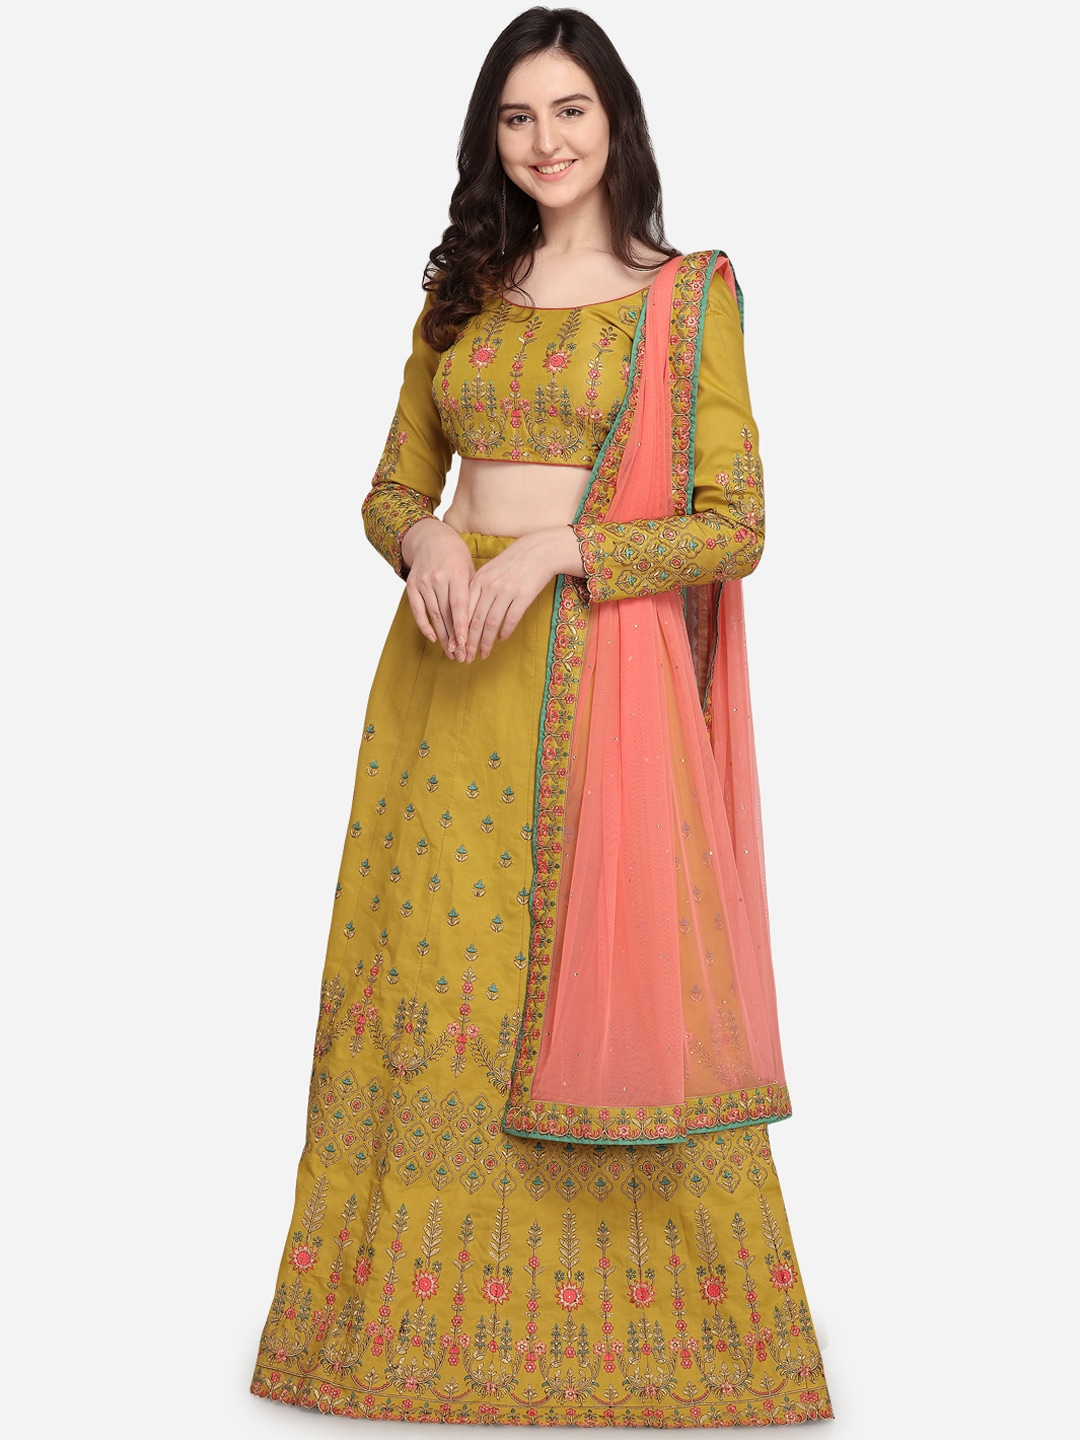 RIYA Mustard Yellow & Peach-Coloured Embroidered Unstitched Lehenga & Blouse with Dupatta